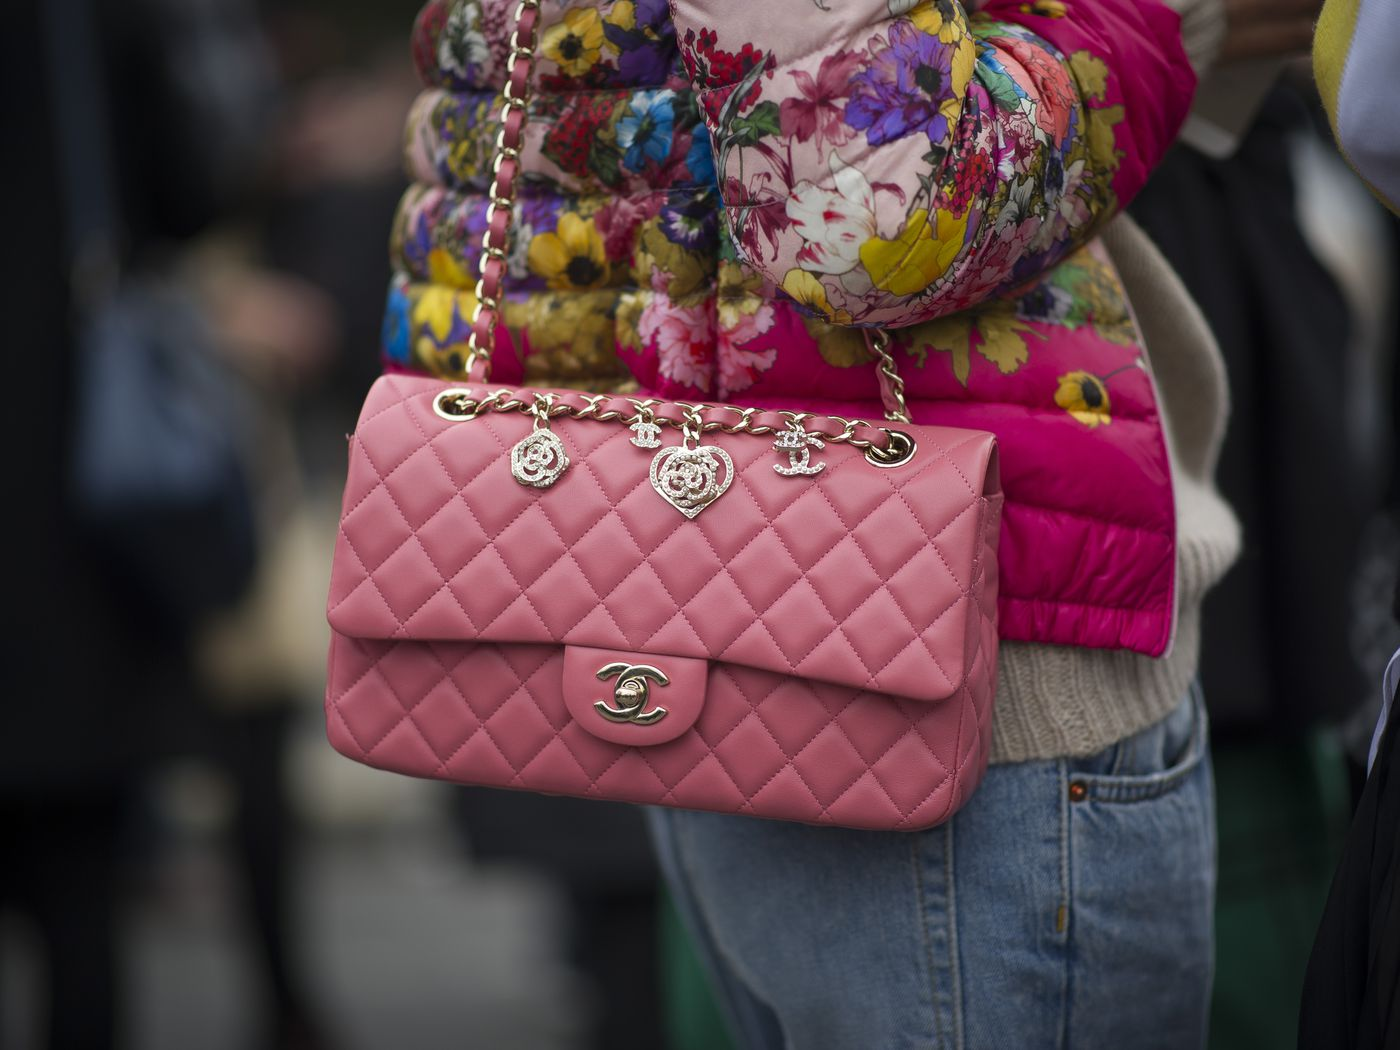 See How Much Chanel Bag Prices Have Skyrocketed This Decade